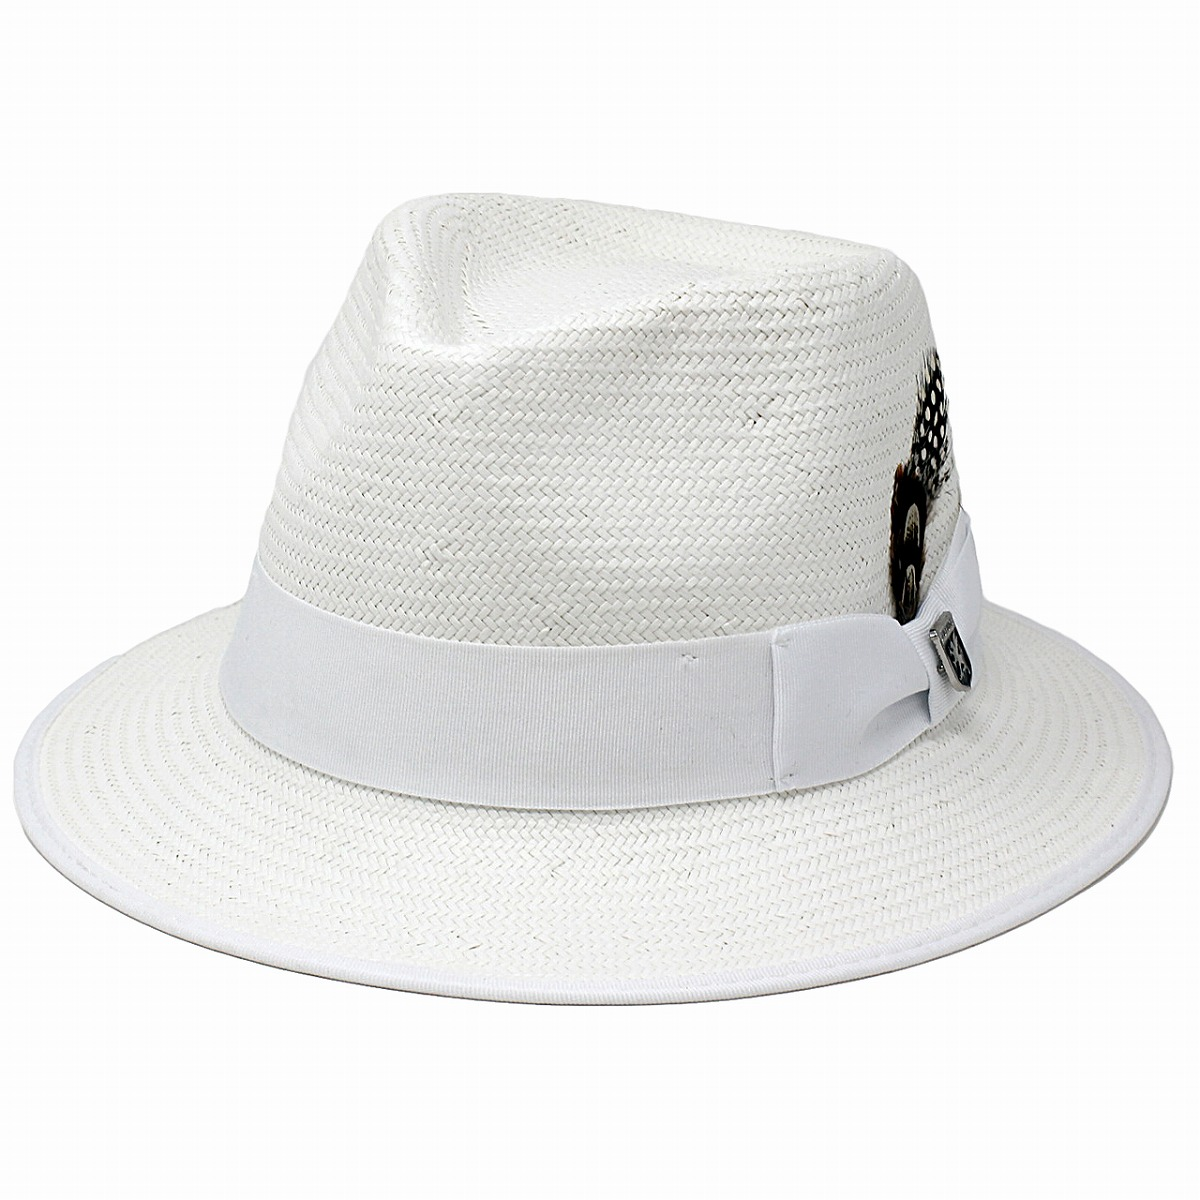 2a3b411f67992 Straw hat men s big size 61cm STACY ADAMS hat soft felt hat hat gentleman  Austin saliva Hironaka buckling up hat ten-gallon hat TOYO Stacy Adams  import ...